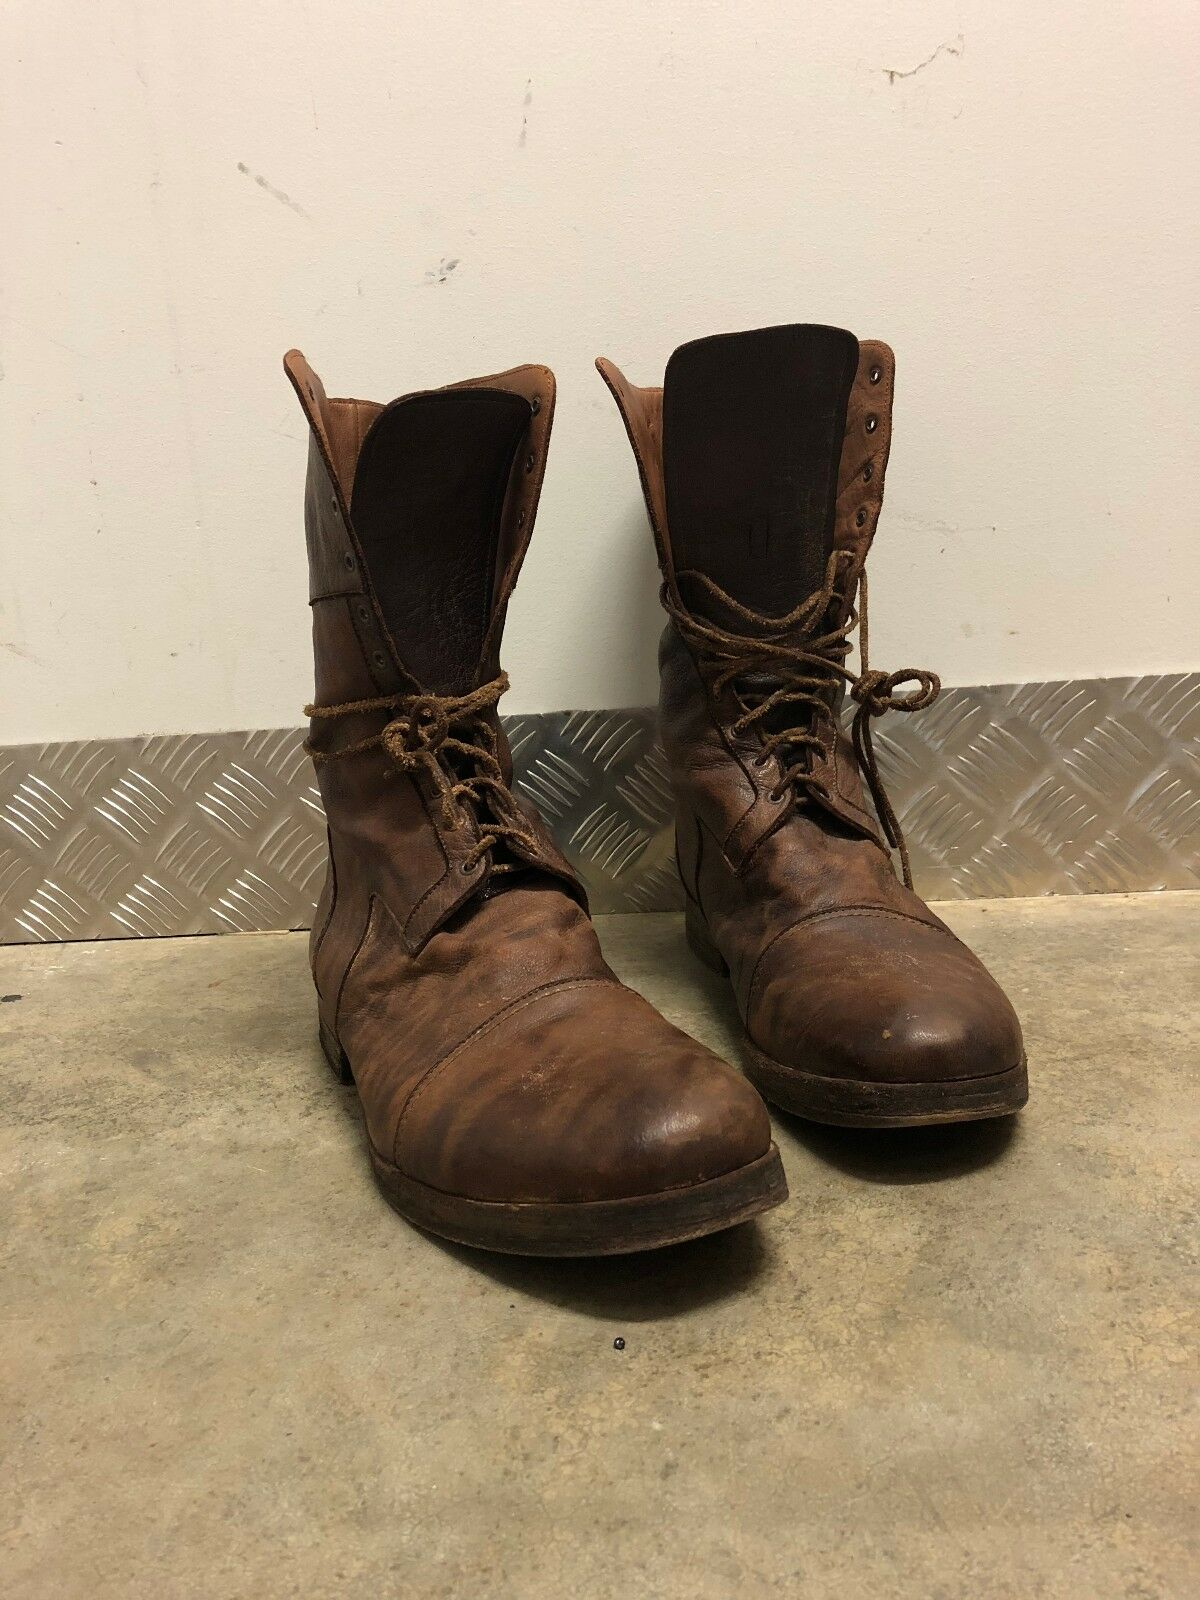 Christian Peau boots  for Hommes  Size 44 perfect perfect 44 conditions old leather e72707